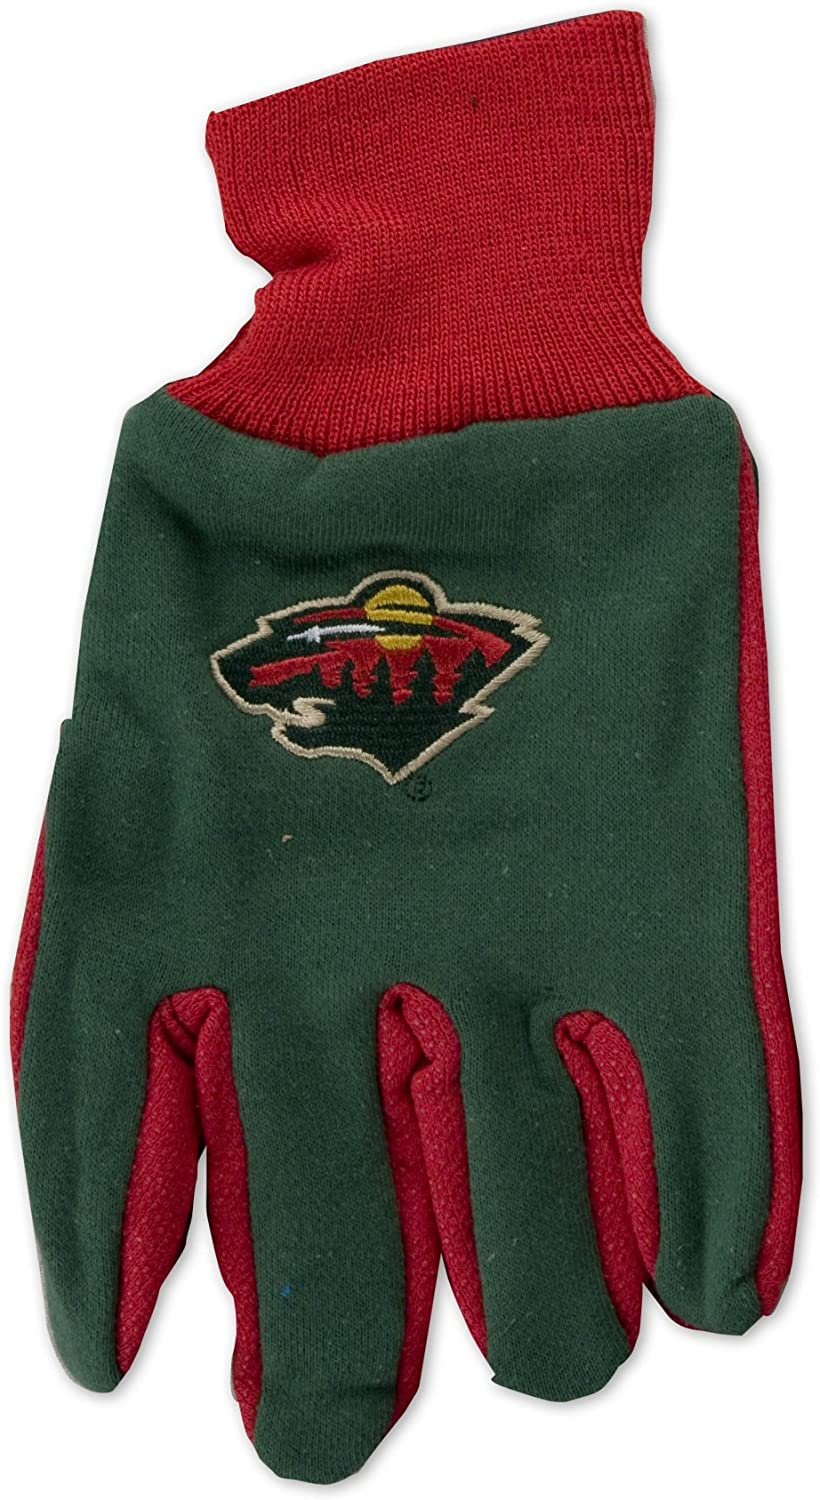 NHL Minnesota Wild Two-Tone Gloves, Green/Red : Sports Fan Apparel : Clothing